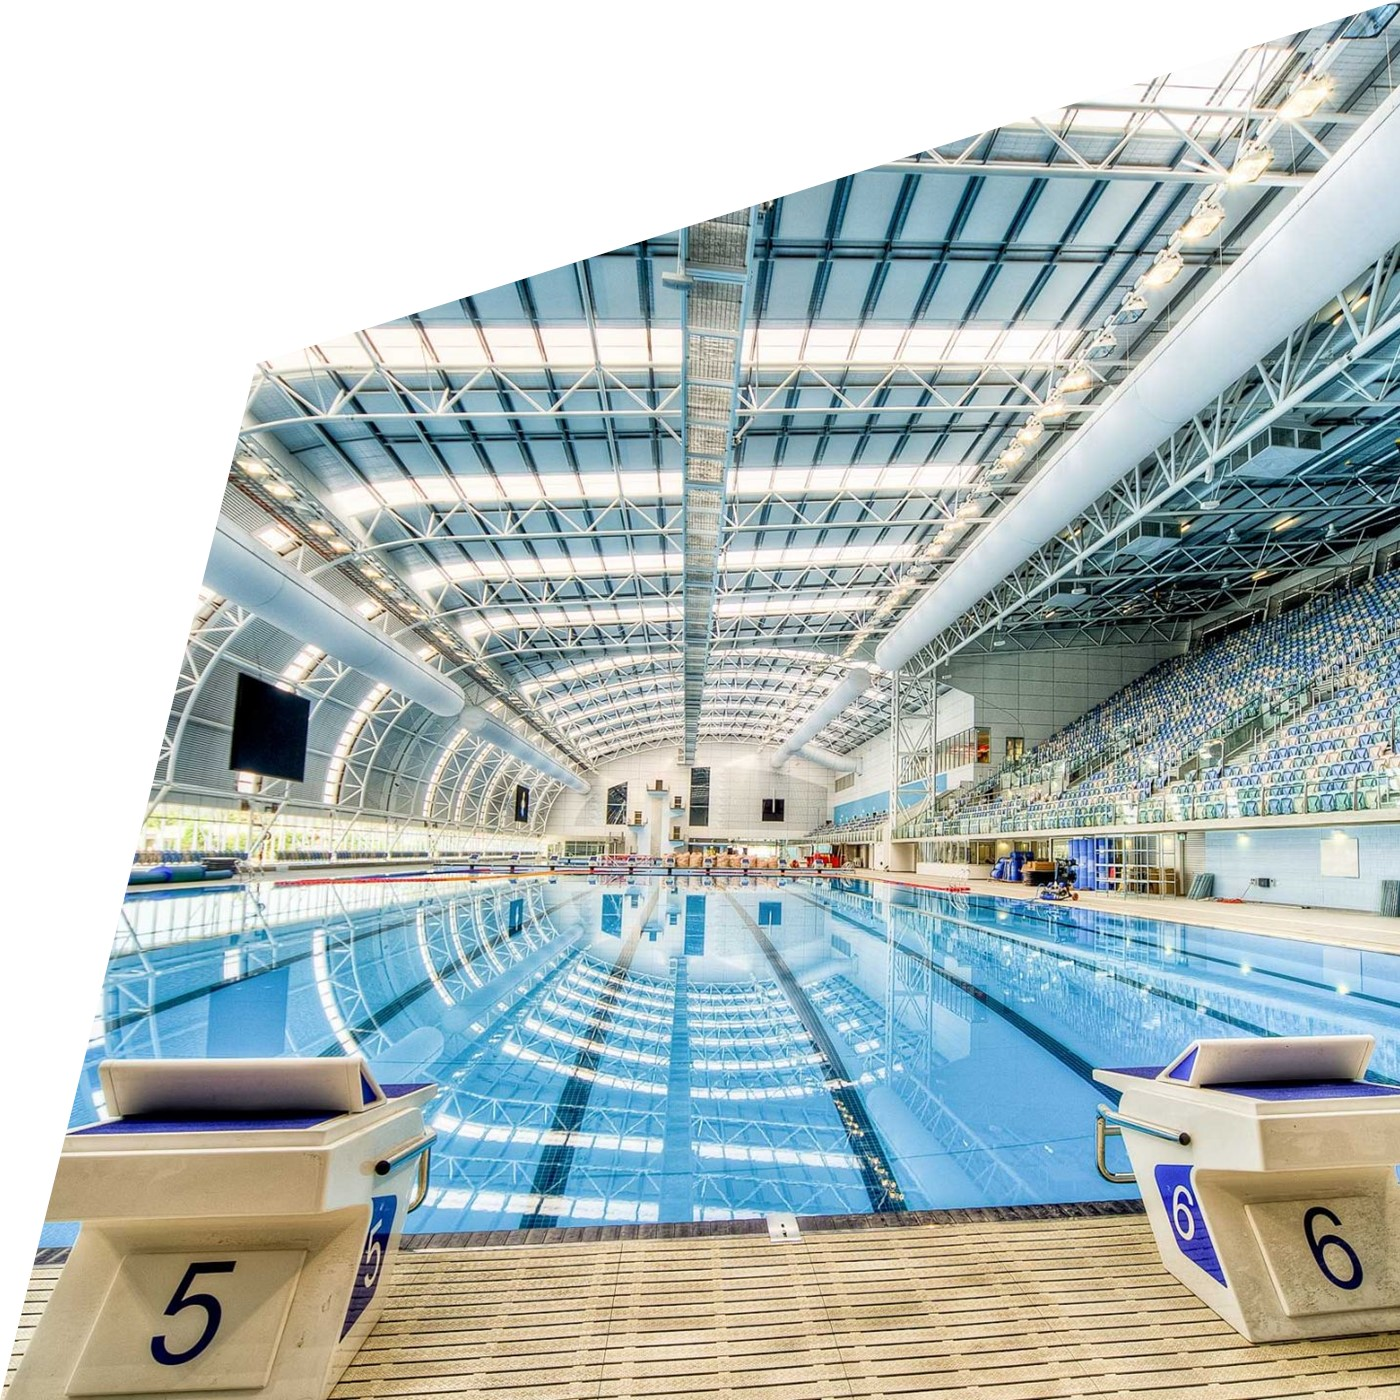 State Aquatic Centre, SA